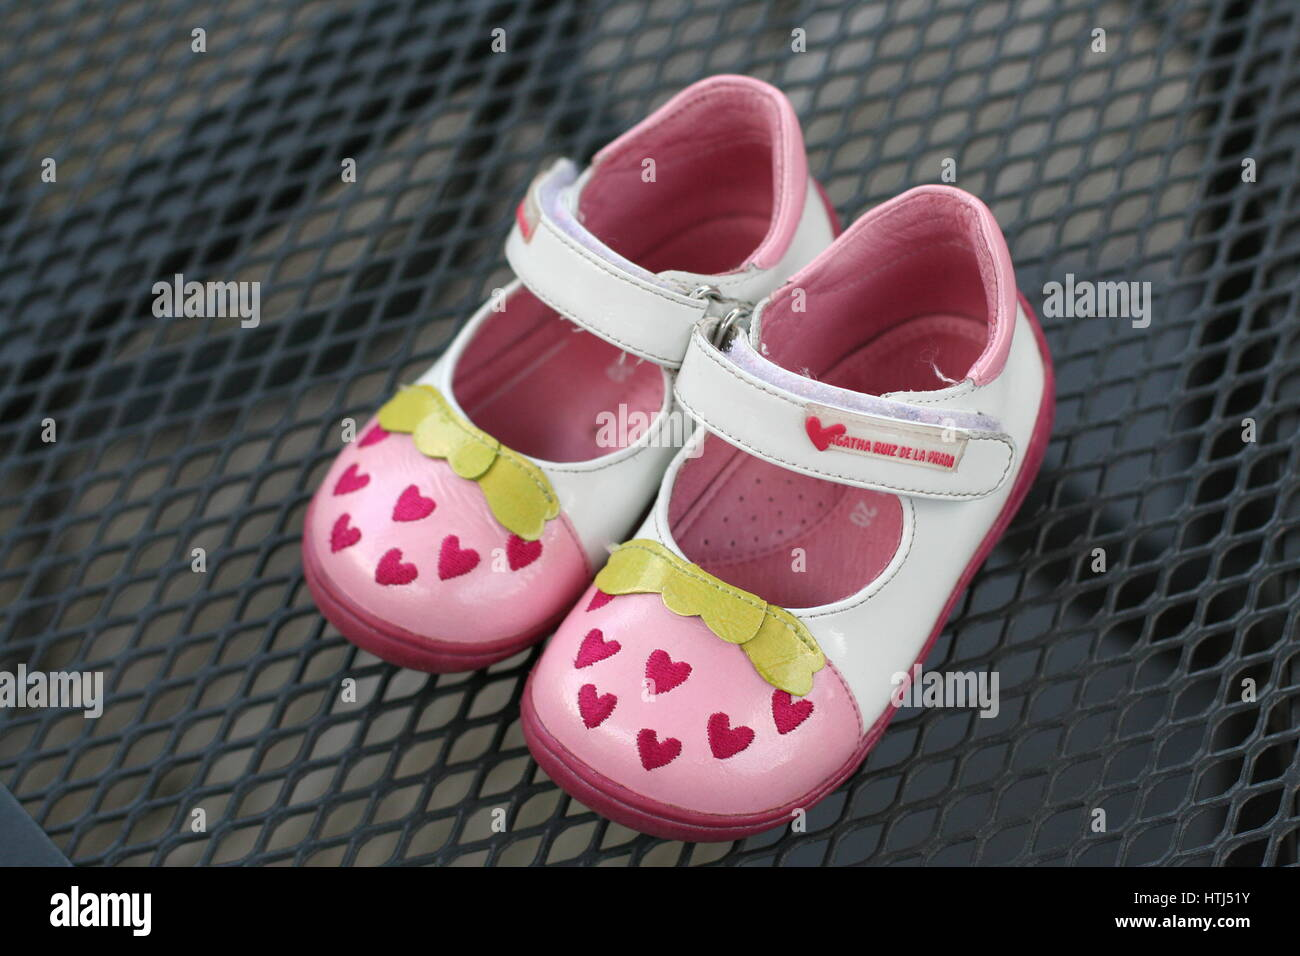 5816cb4cf2f1 My first shoes, baby concept toddler, learning to walk concept Stock ...